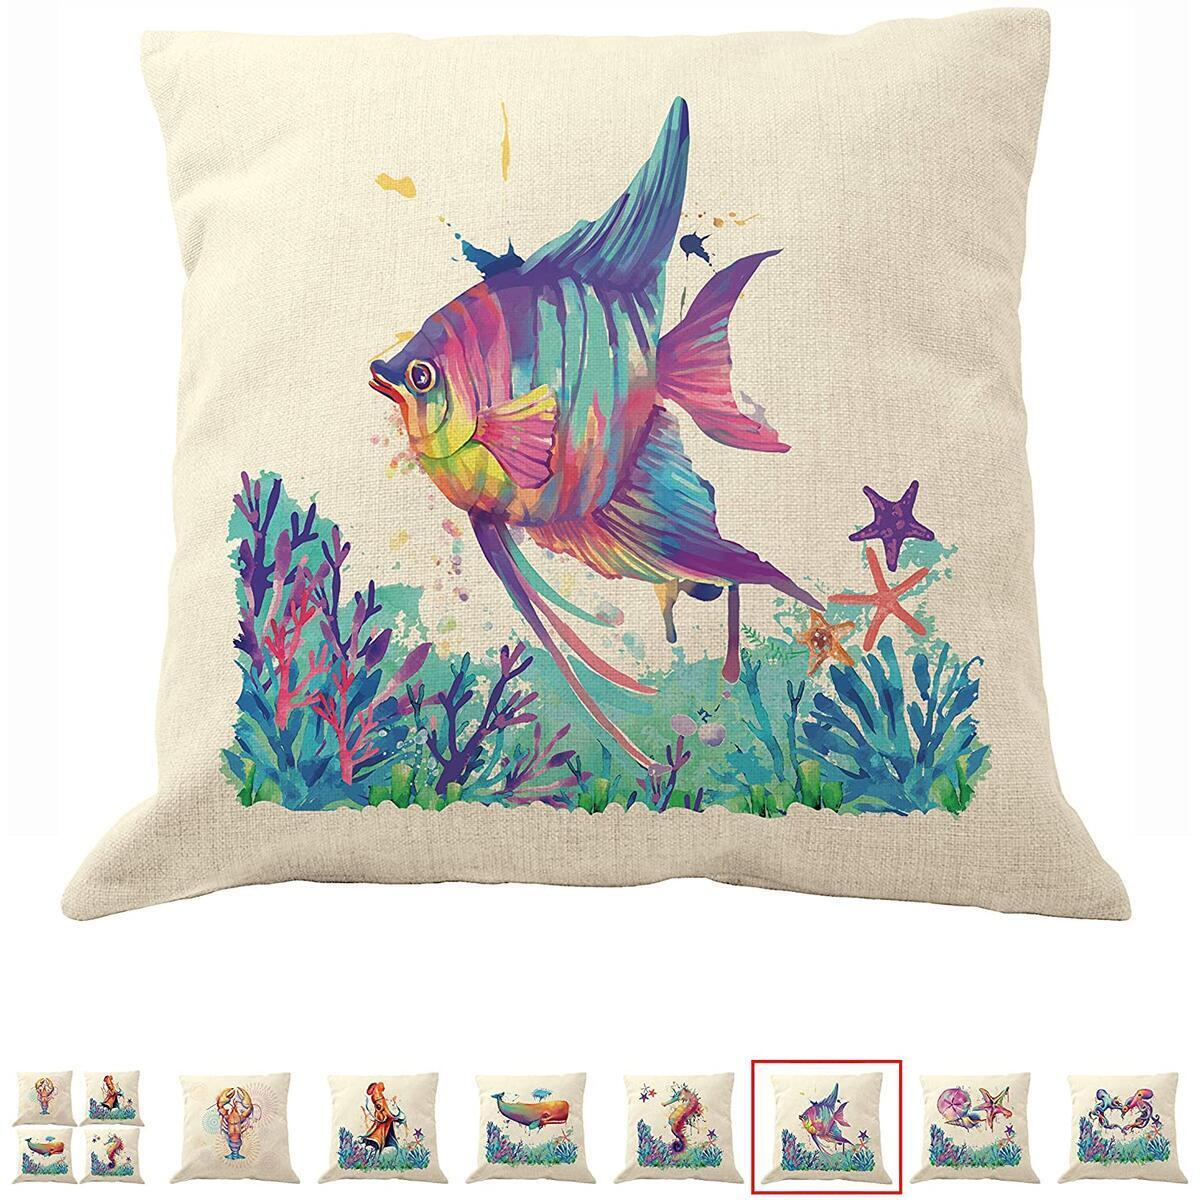 DrupsCo 18x18 Angel Fish Pillow Cover for Couches - Angel Fish Decor Pillow Cover, Cotton Linen Coastal Decor Beach Theme Pillow Covers